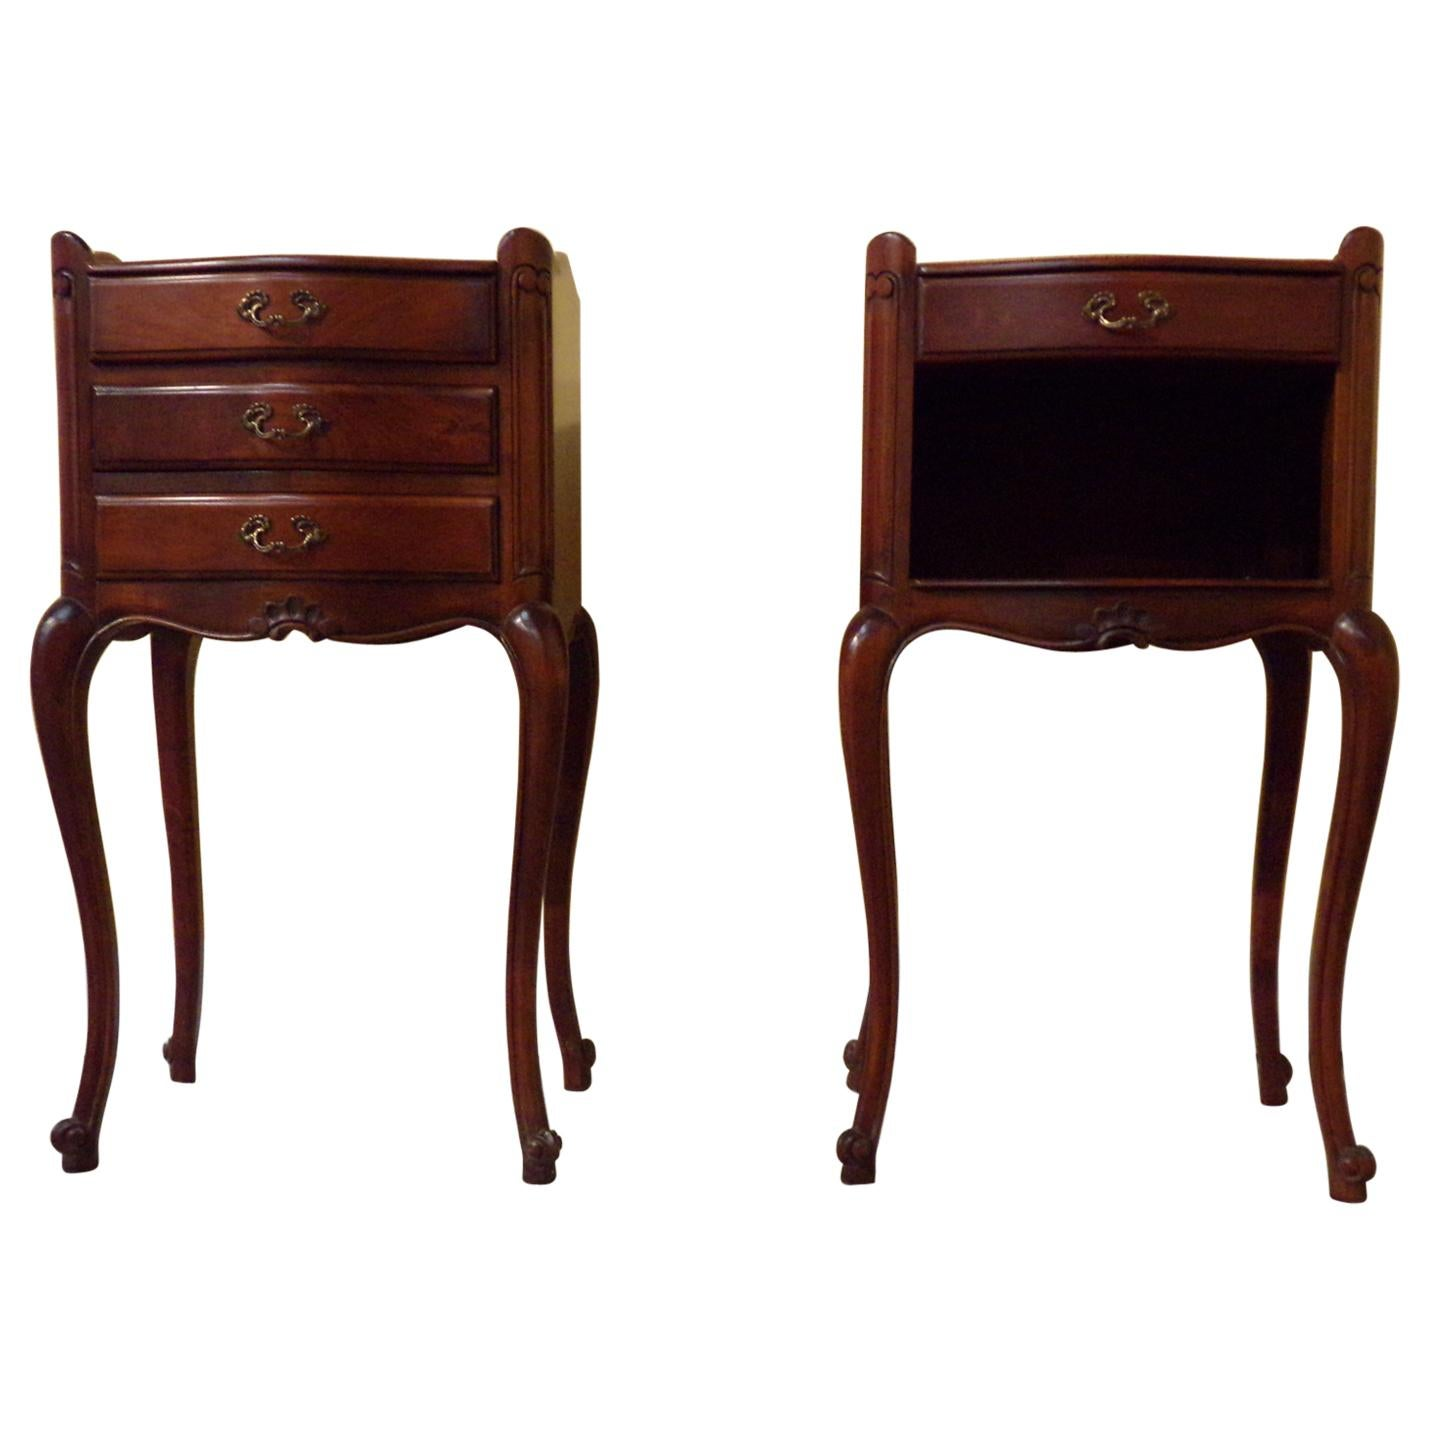 Pair of Louis XV Style Tray Top Bedside Cabinets